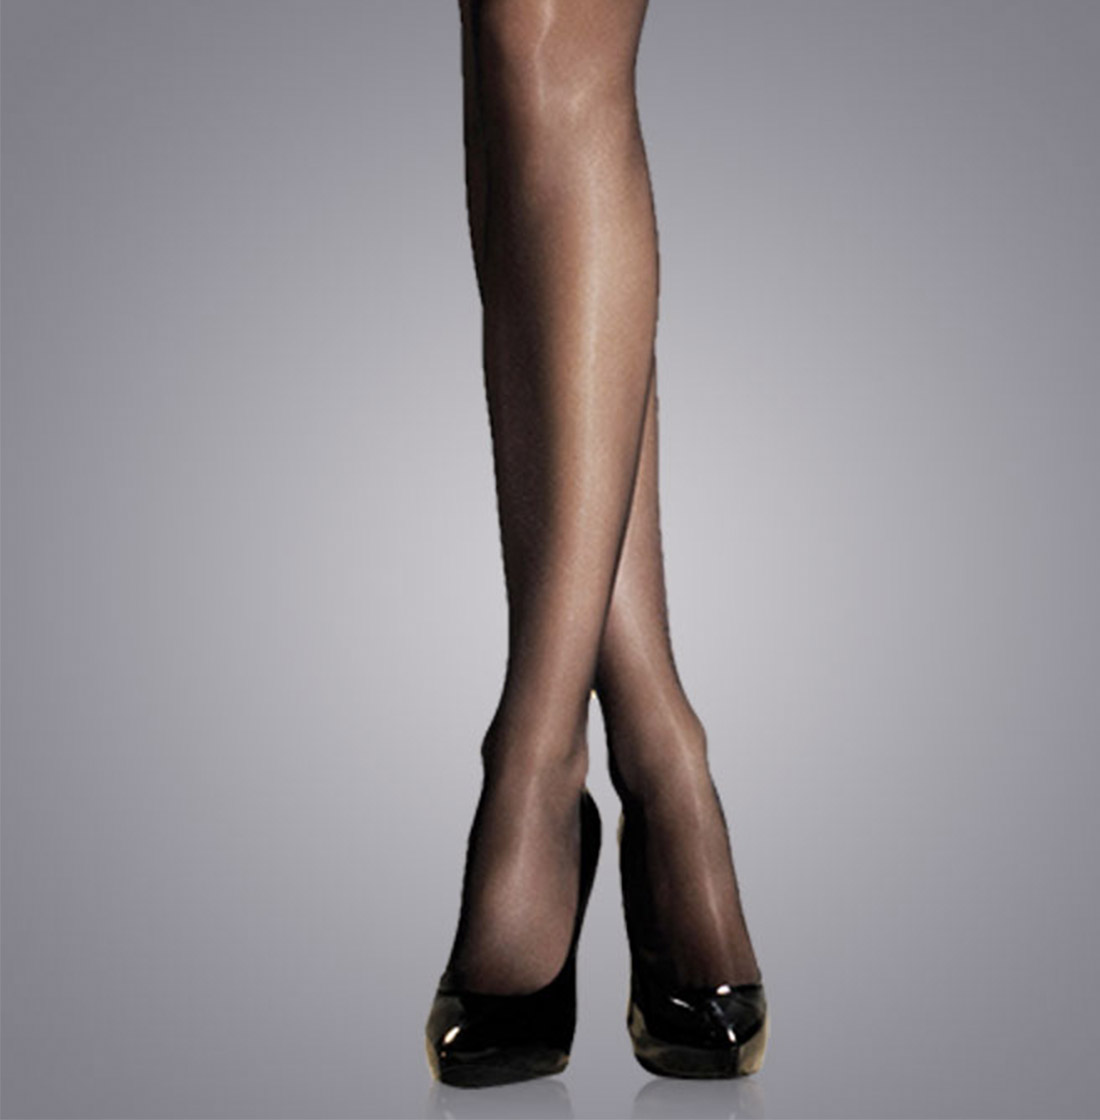 25085da8543 Satin finish hosiery has a pearl like sheen and is the perfect balance  between a matte leg look and a shine finish.